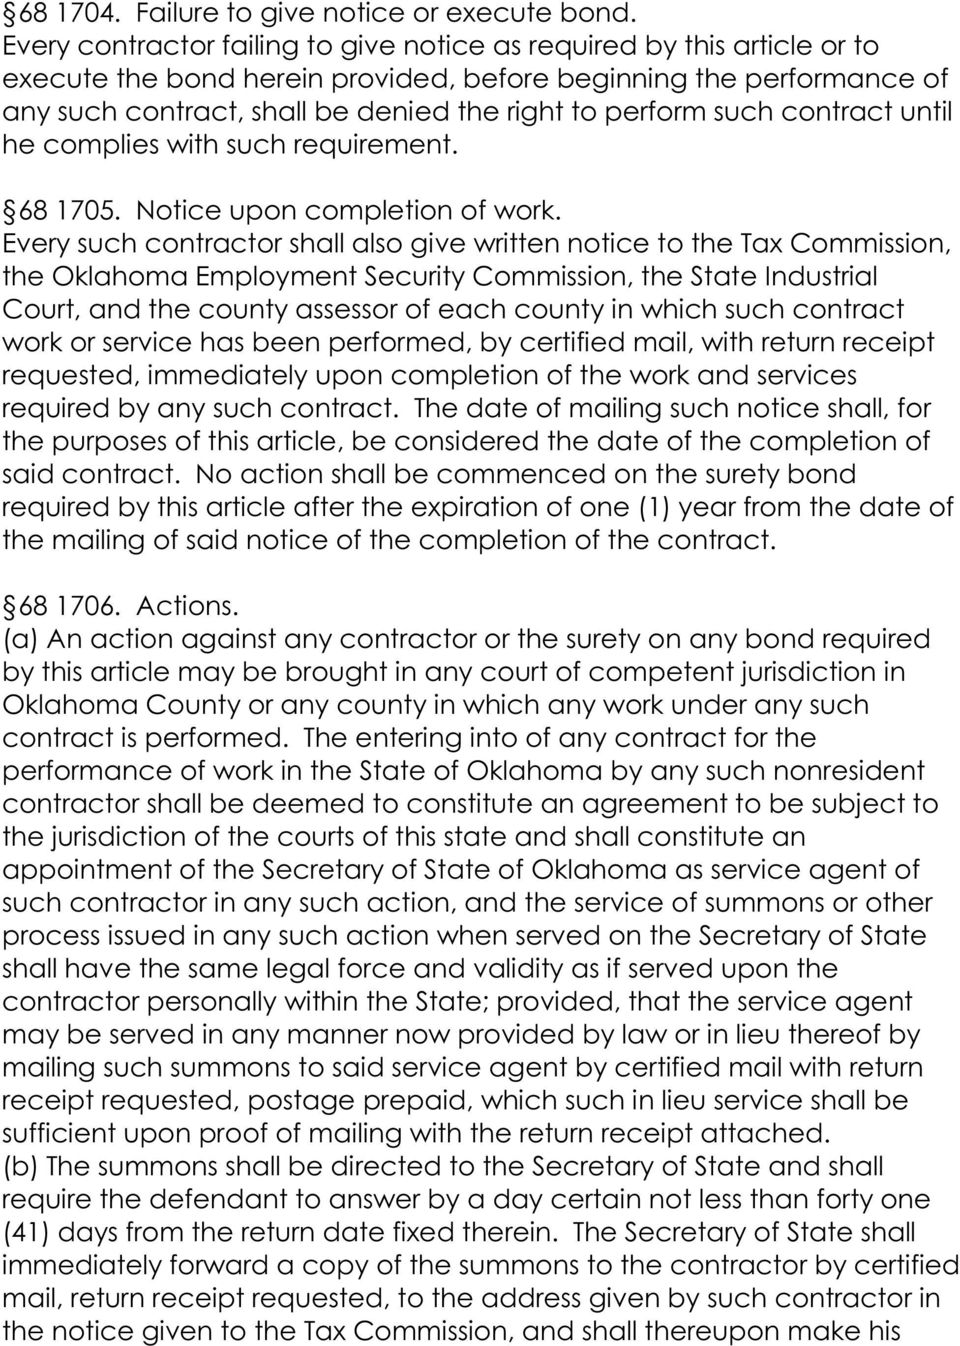 such contract until he complies with such requirement. 68 1705. Notice upon completion of work.